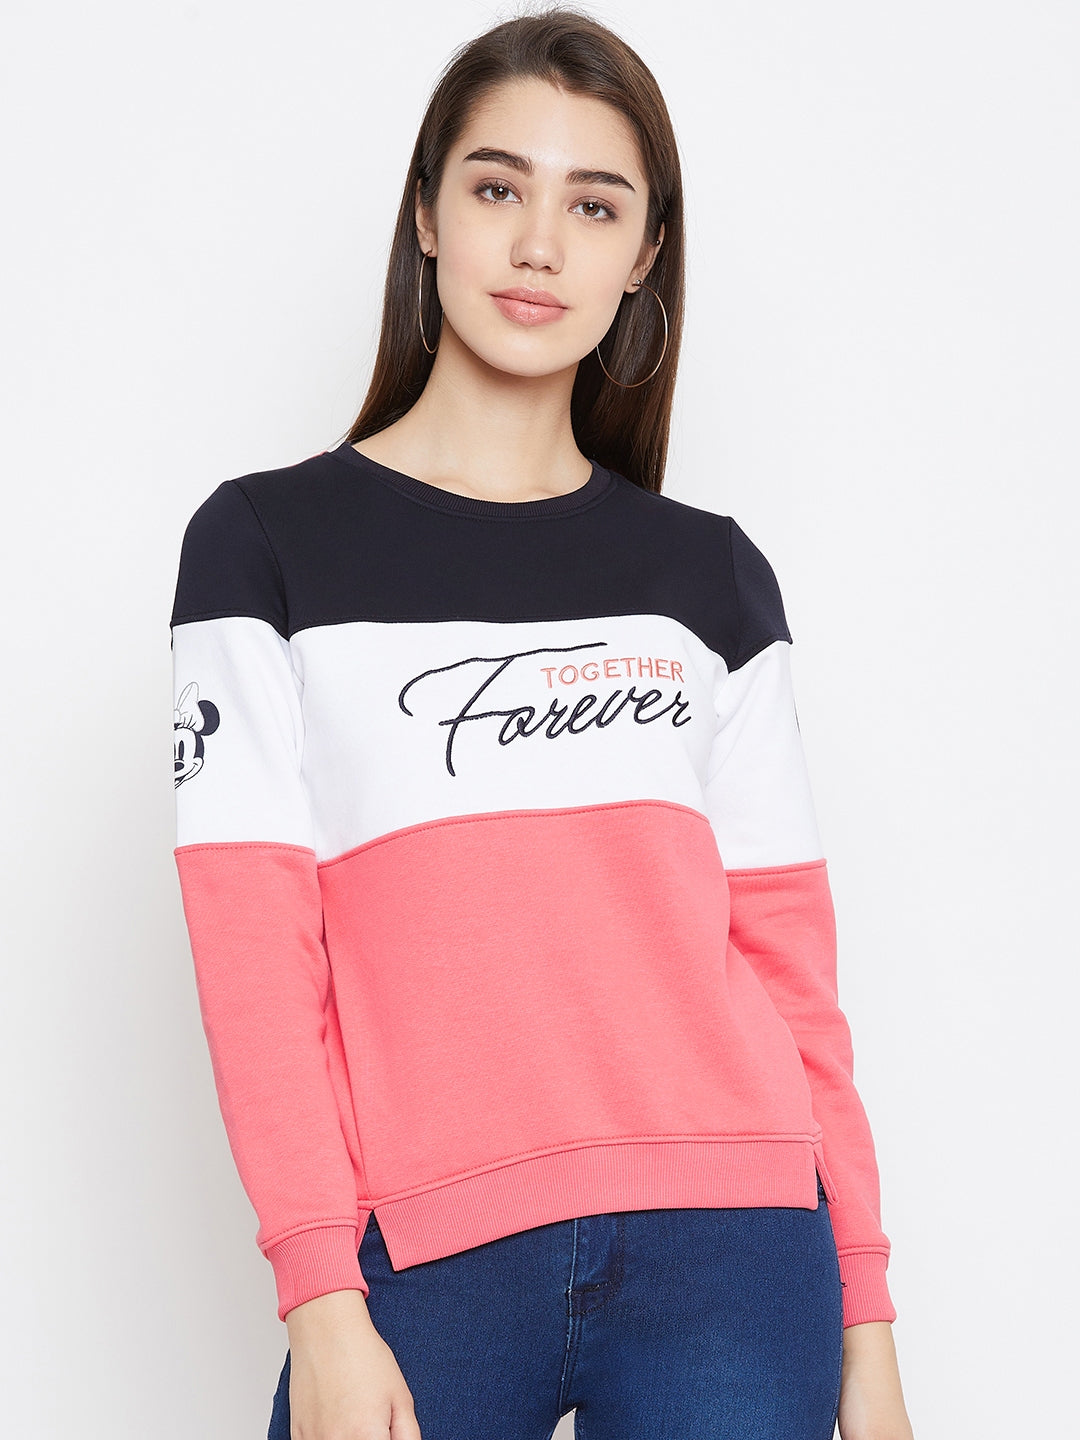 Octave Apparels Rose Pink T-Shirt for Women